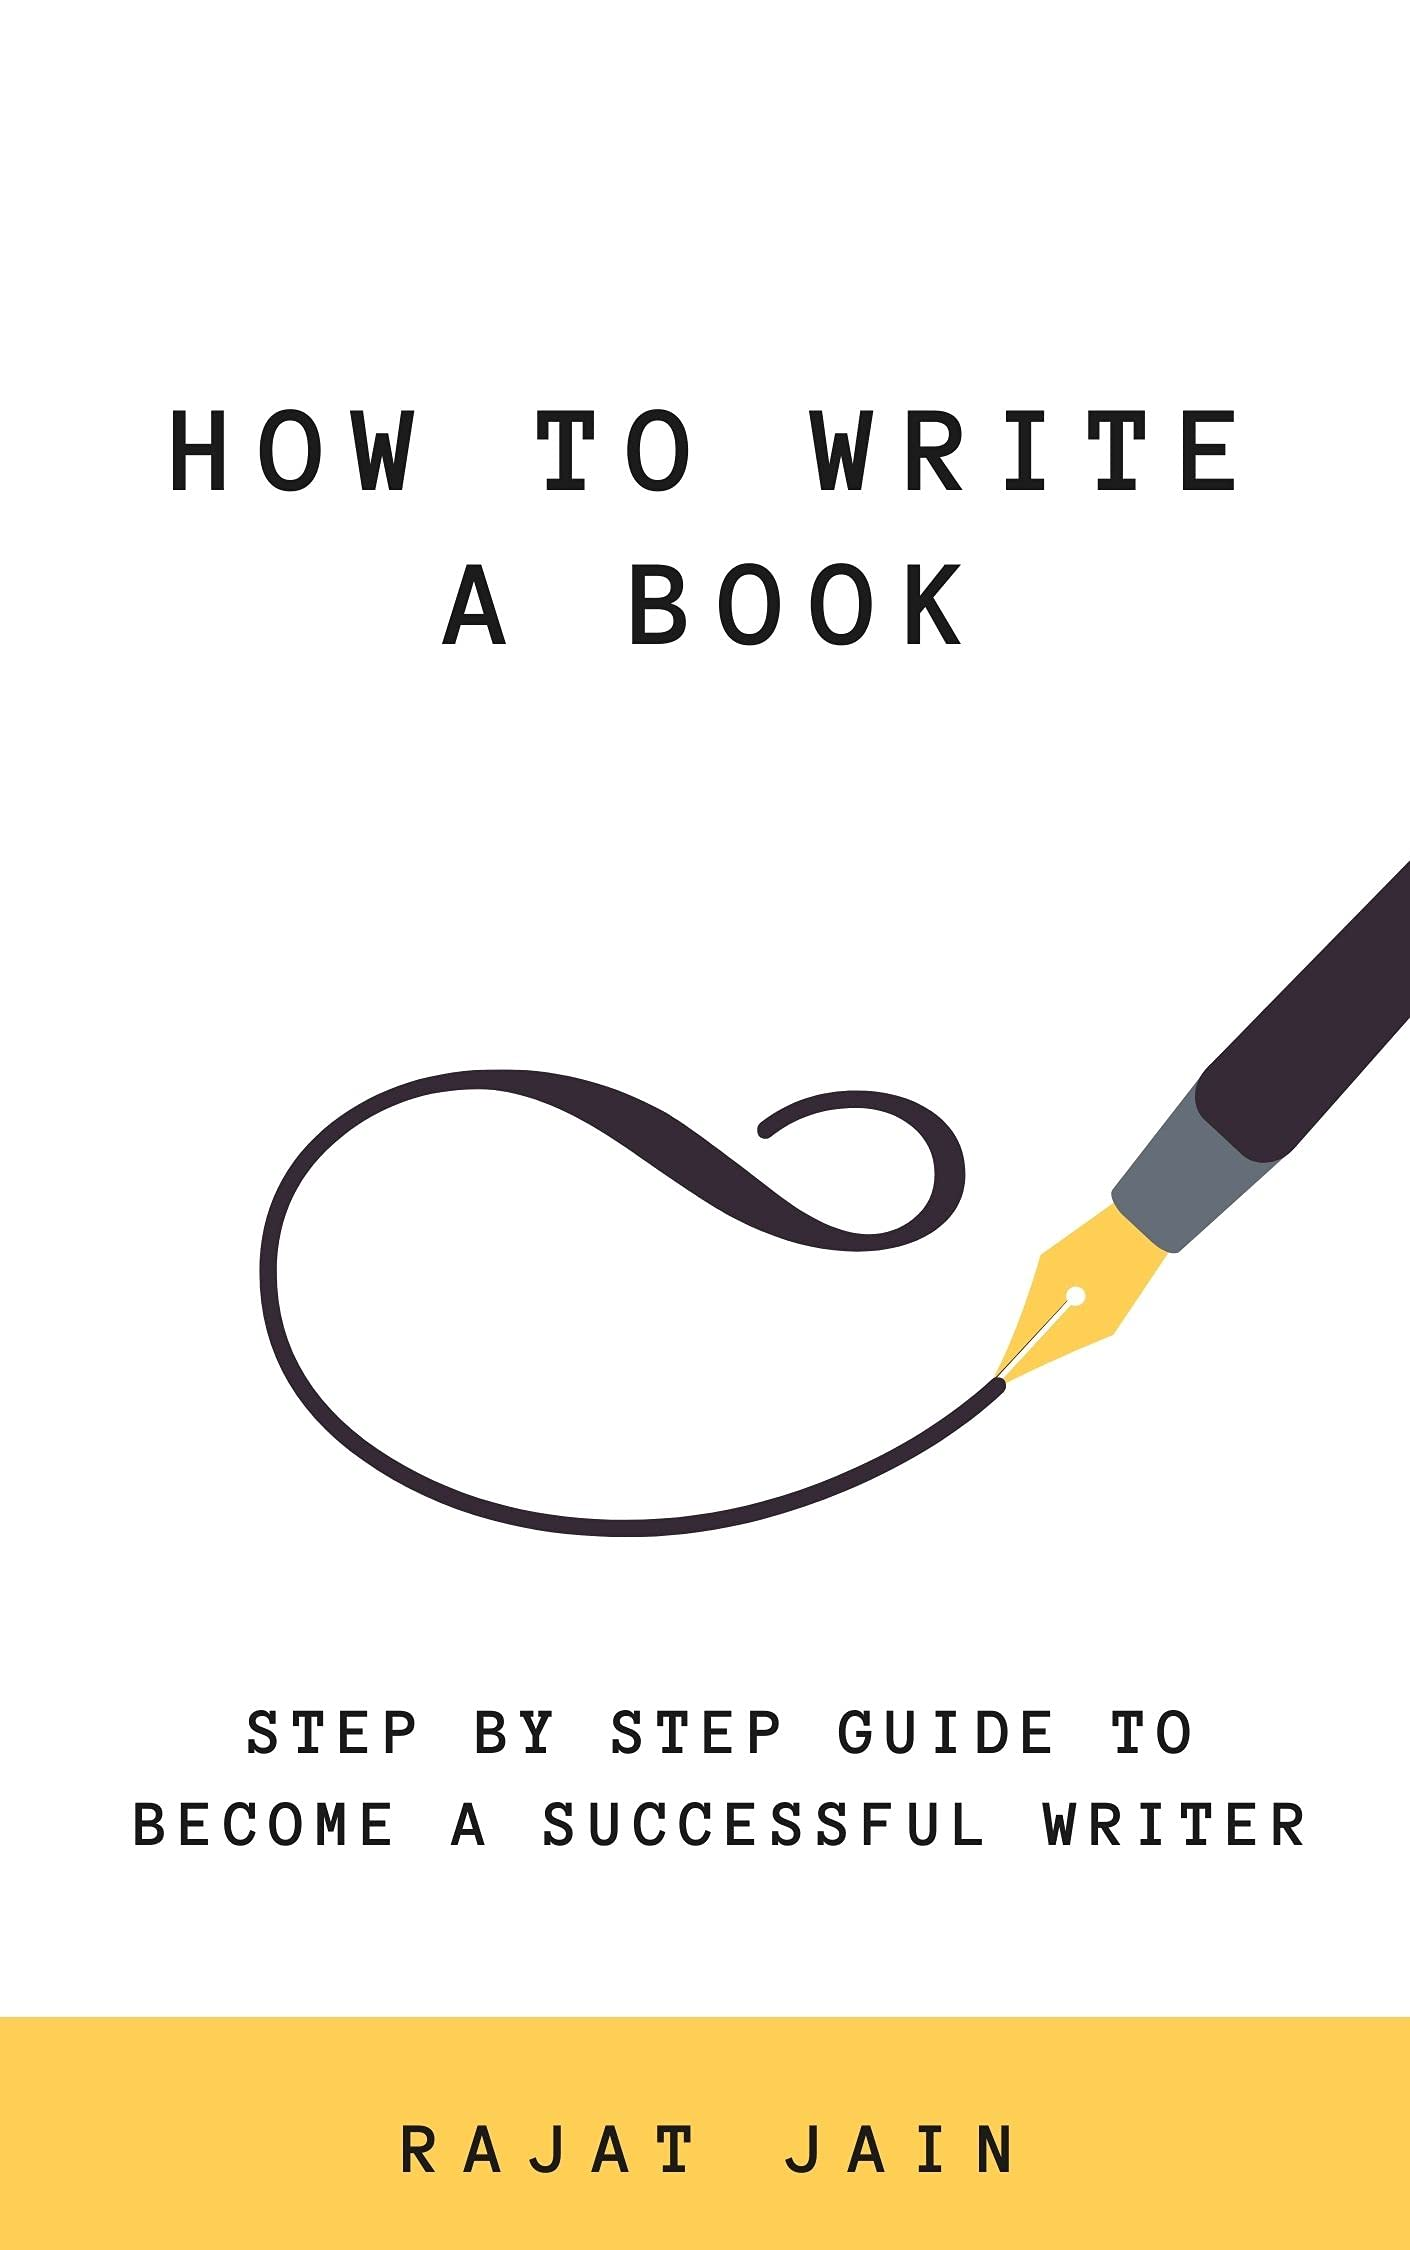 How to Write a Book: Step by Step Guide to Become a Successful Writer